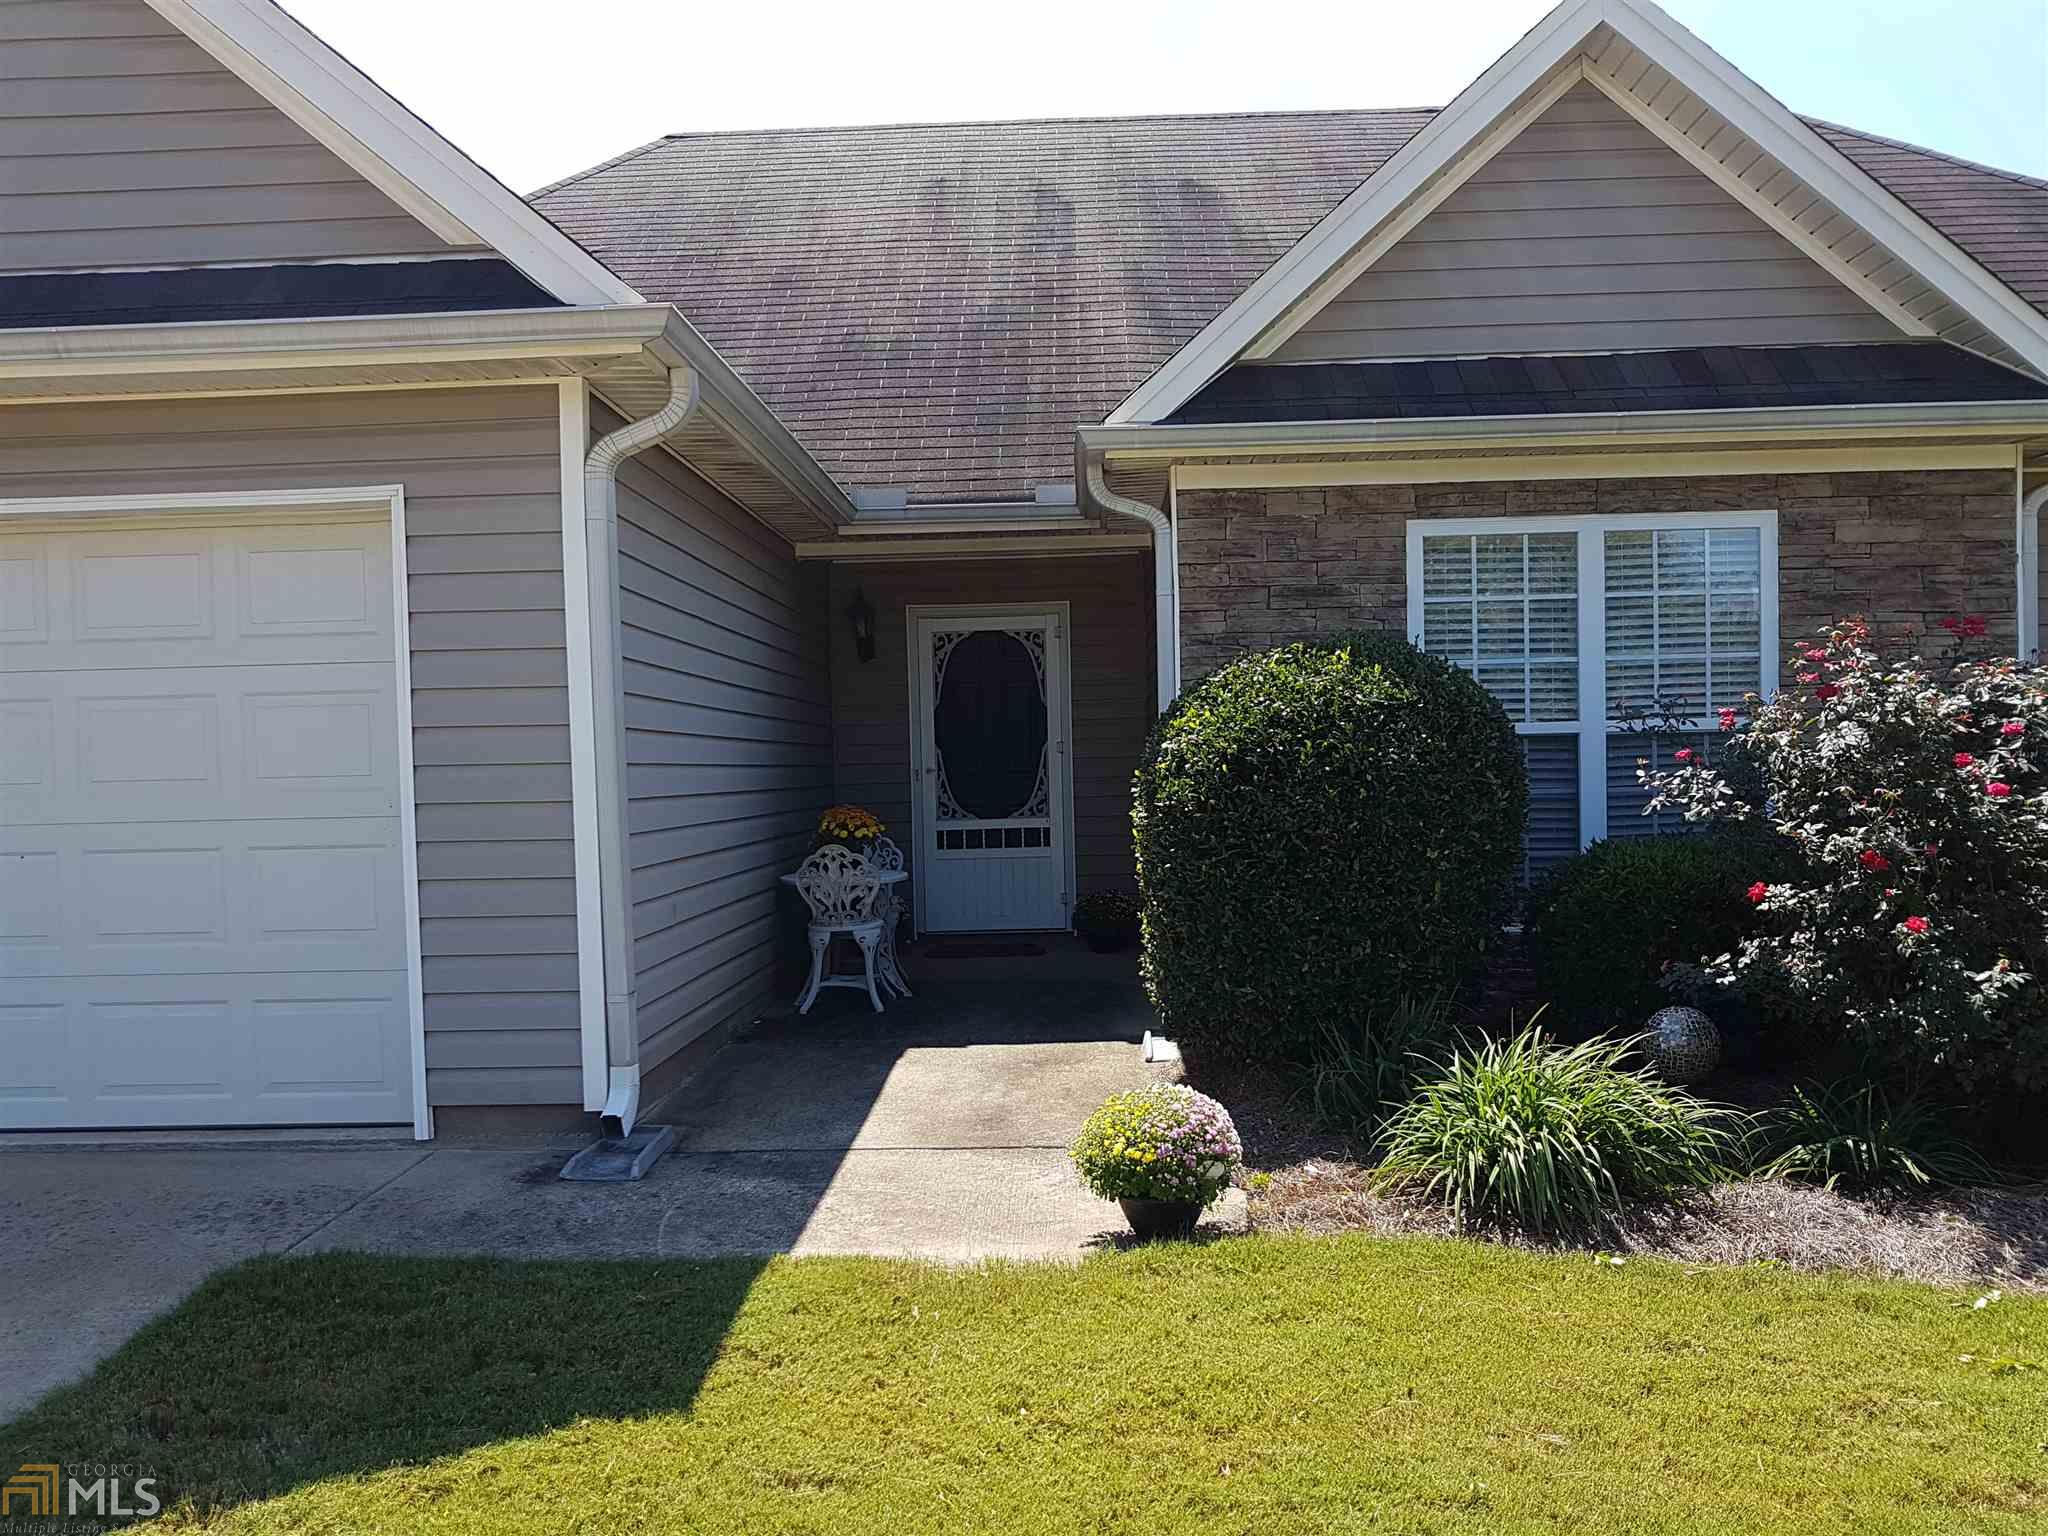 102 Bramble Way, Griffin, GA 30224